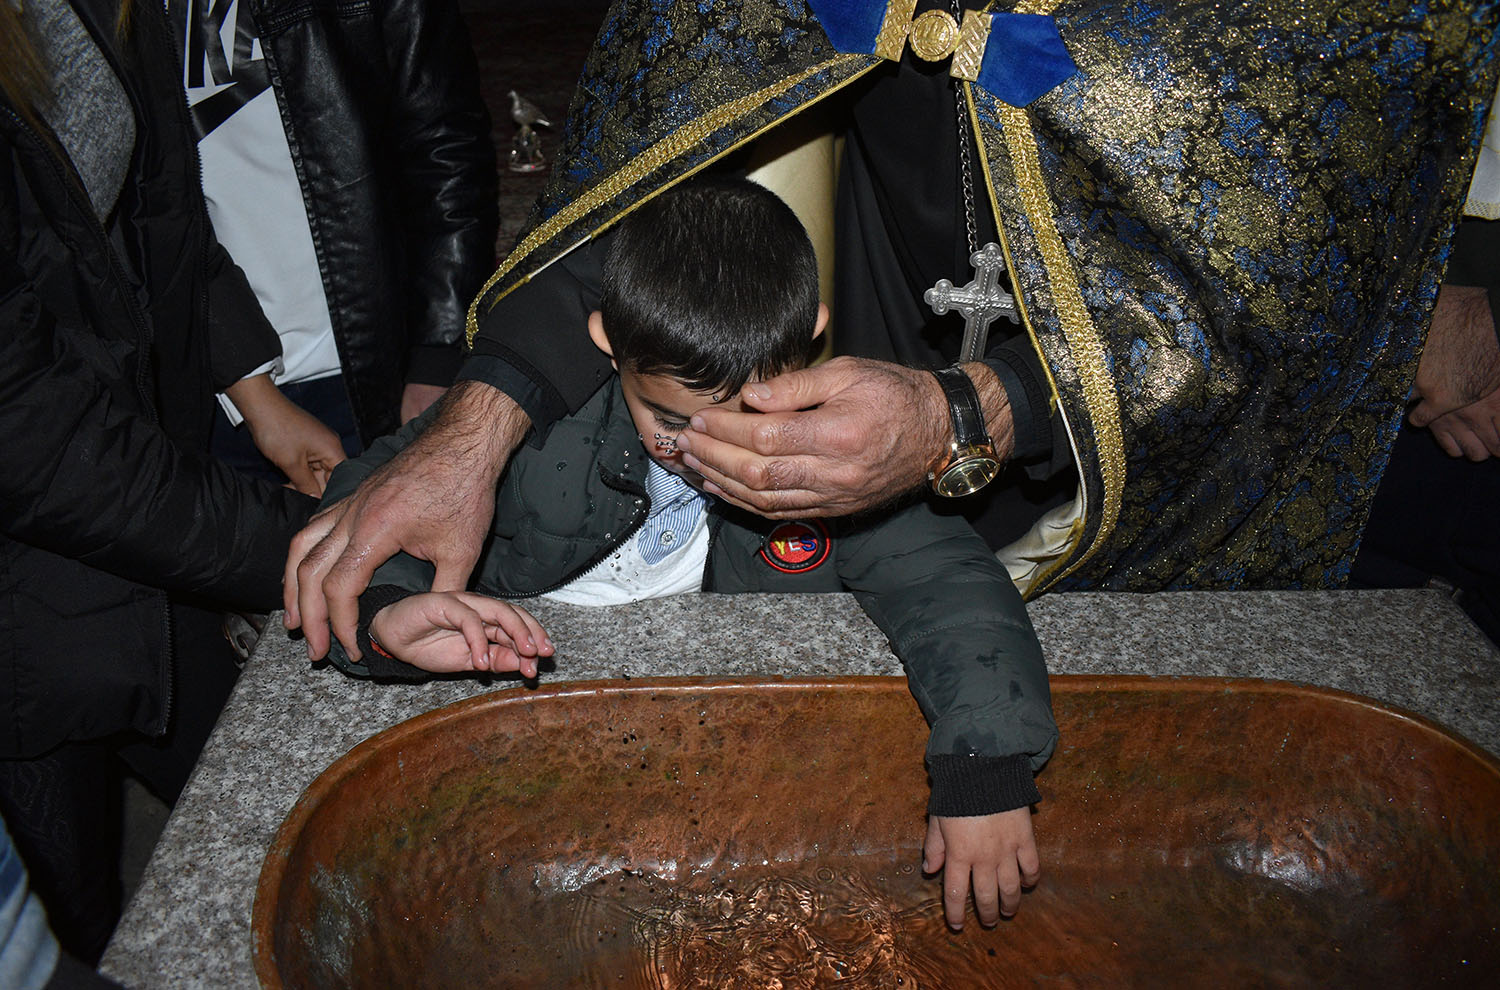 A child is baptized at Nagorno-Karabakh's Dadivank monastery as Russian peacekeepers arrive to oversee the transfer of the nearby province of Kalbajar to Azerbaijan on Nov. 14.